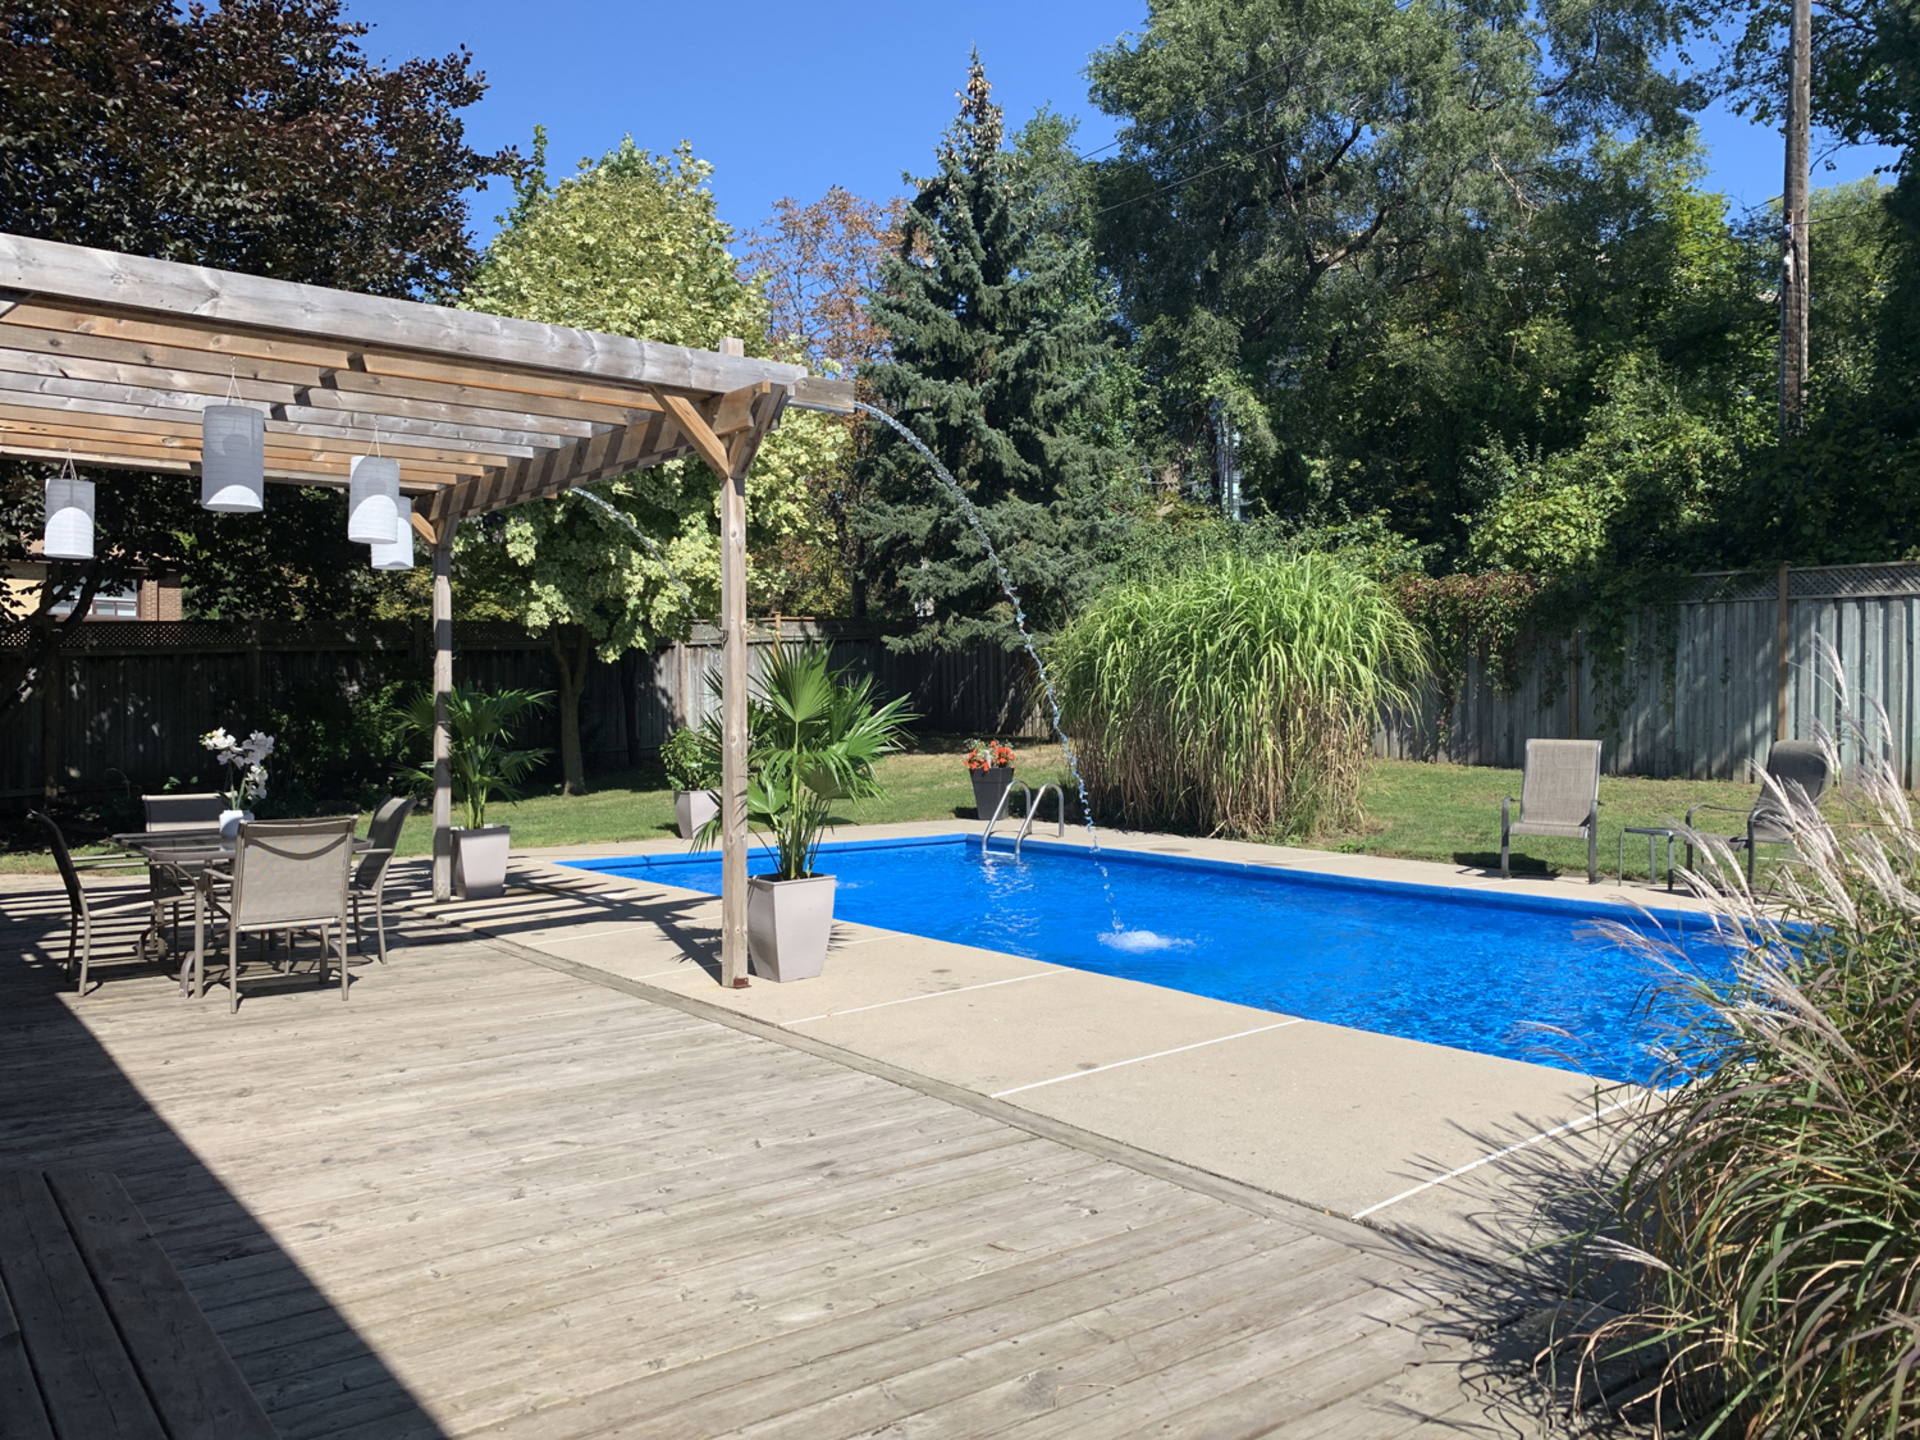 Backyard at 1 Groveland Crescent, Parkwoods-Donalda, Toronto